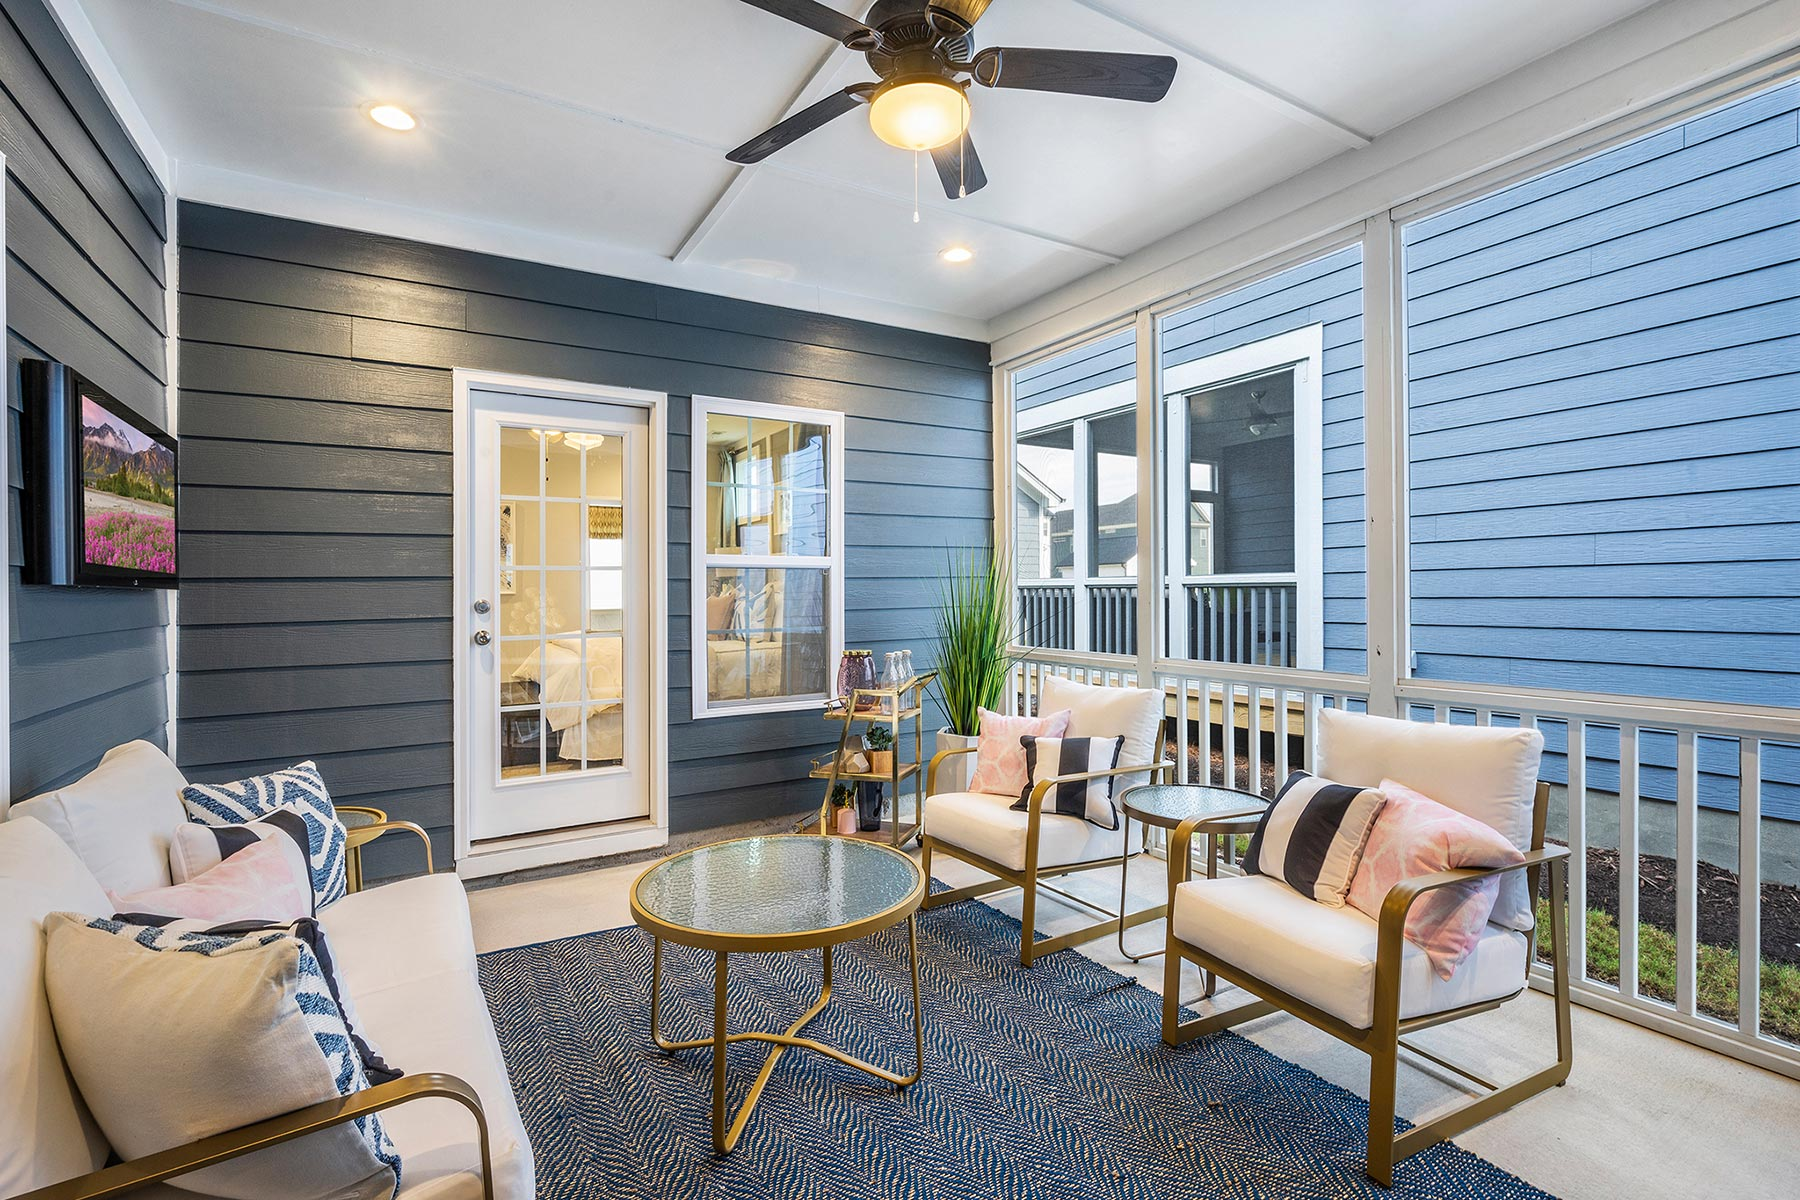 Stewart Plan Others at Wendell Falls in Wendell North Carolina by Mattamy Homes